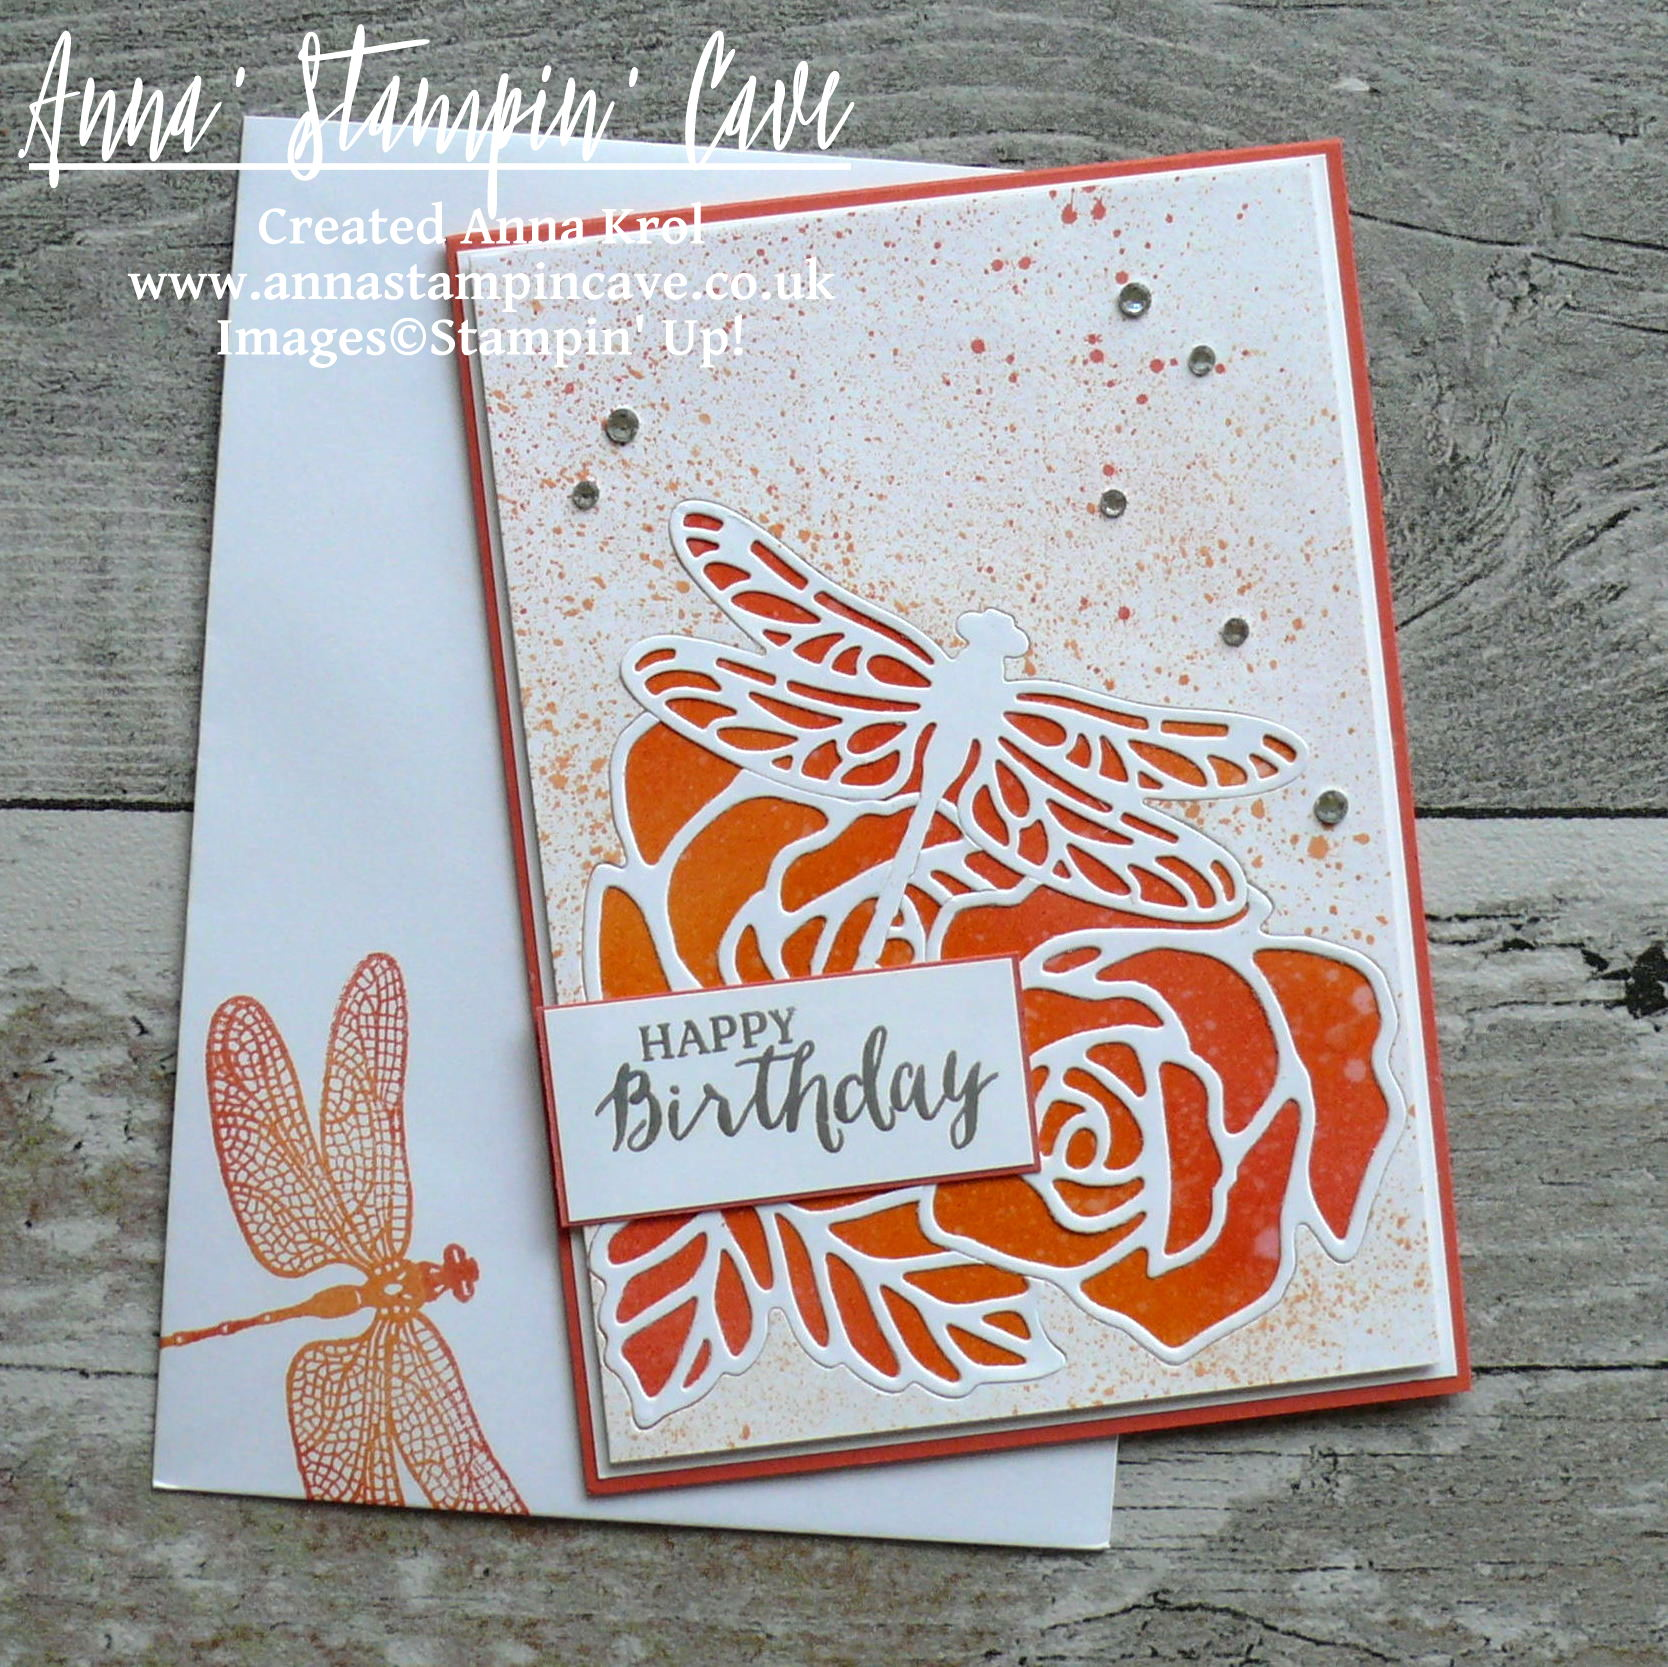 Anna' Stampin' Cave - Roses And Dragonfly Birthday Card using Inlaid Partial Die Cutting_Stampin' Up! Rose Garden Thinlits Dies_Detailed Dragonfly Thinlits Dies 3